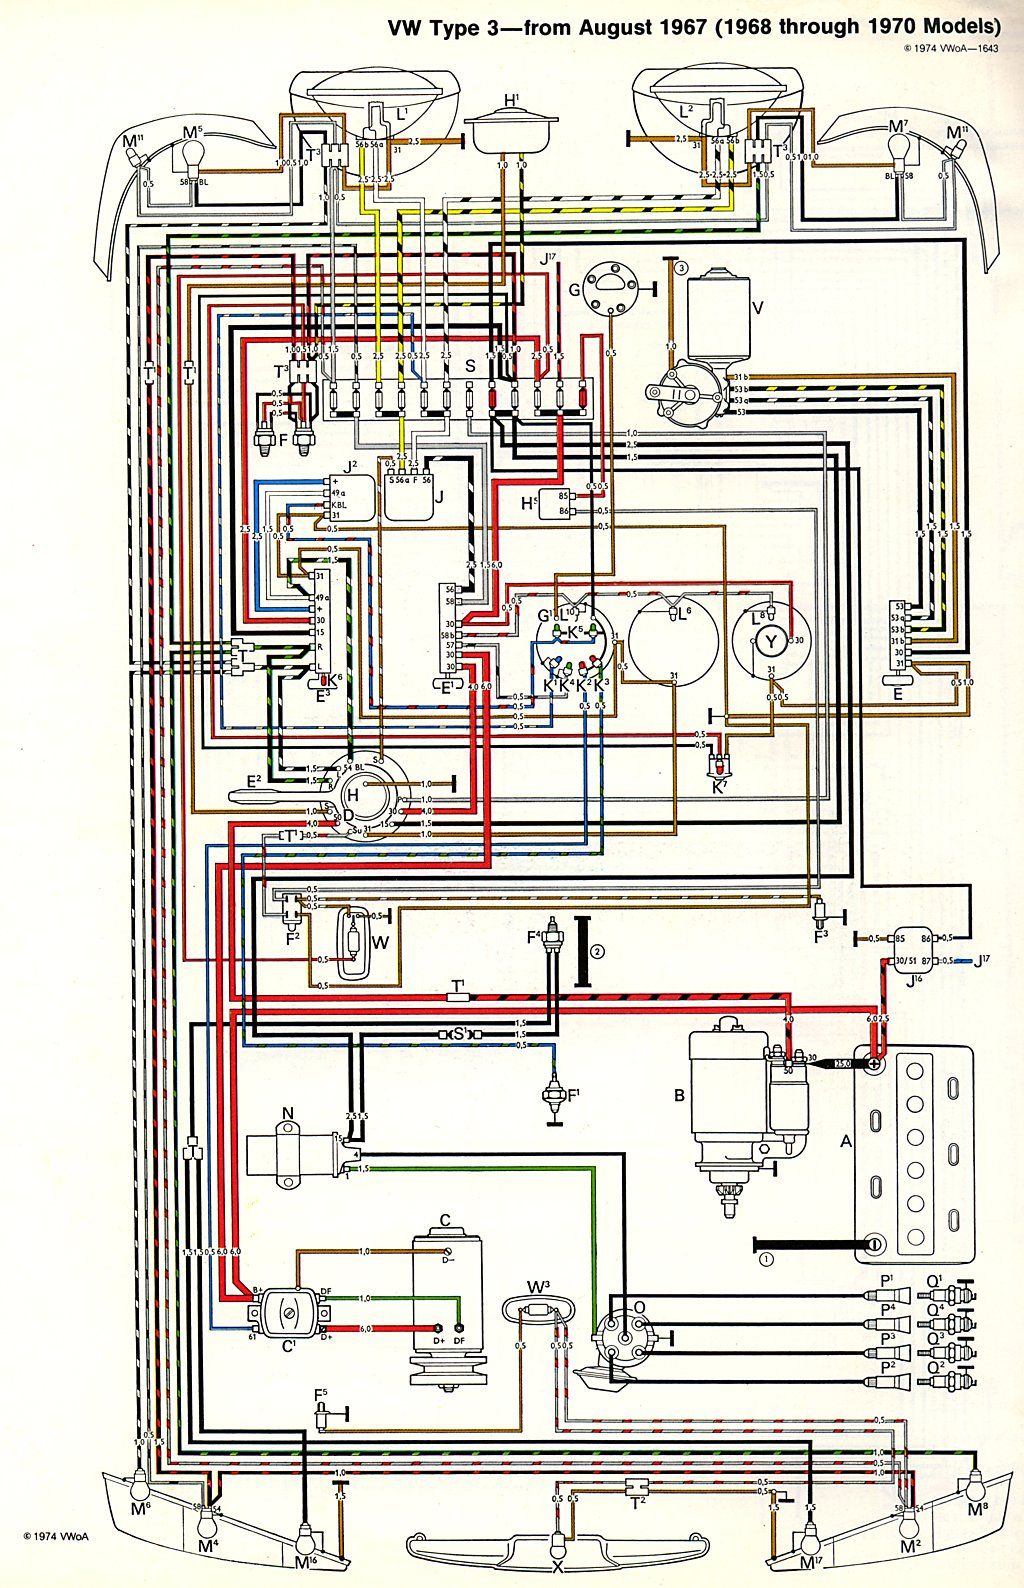 vw bus 1972 wiring diagram as well 1969 vw bus wiring diagram1962 vw wiring diagram wiring diagram